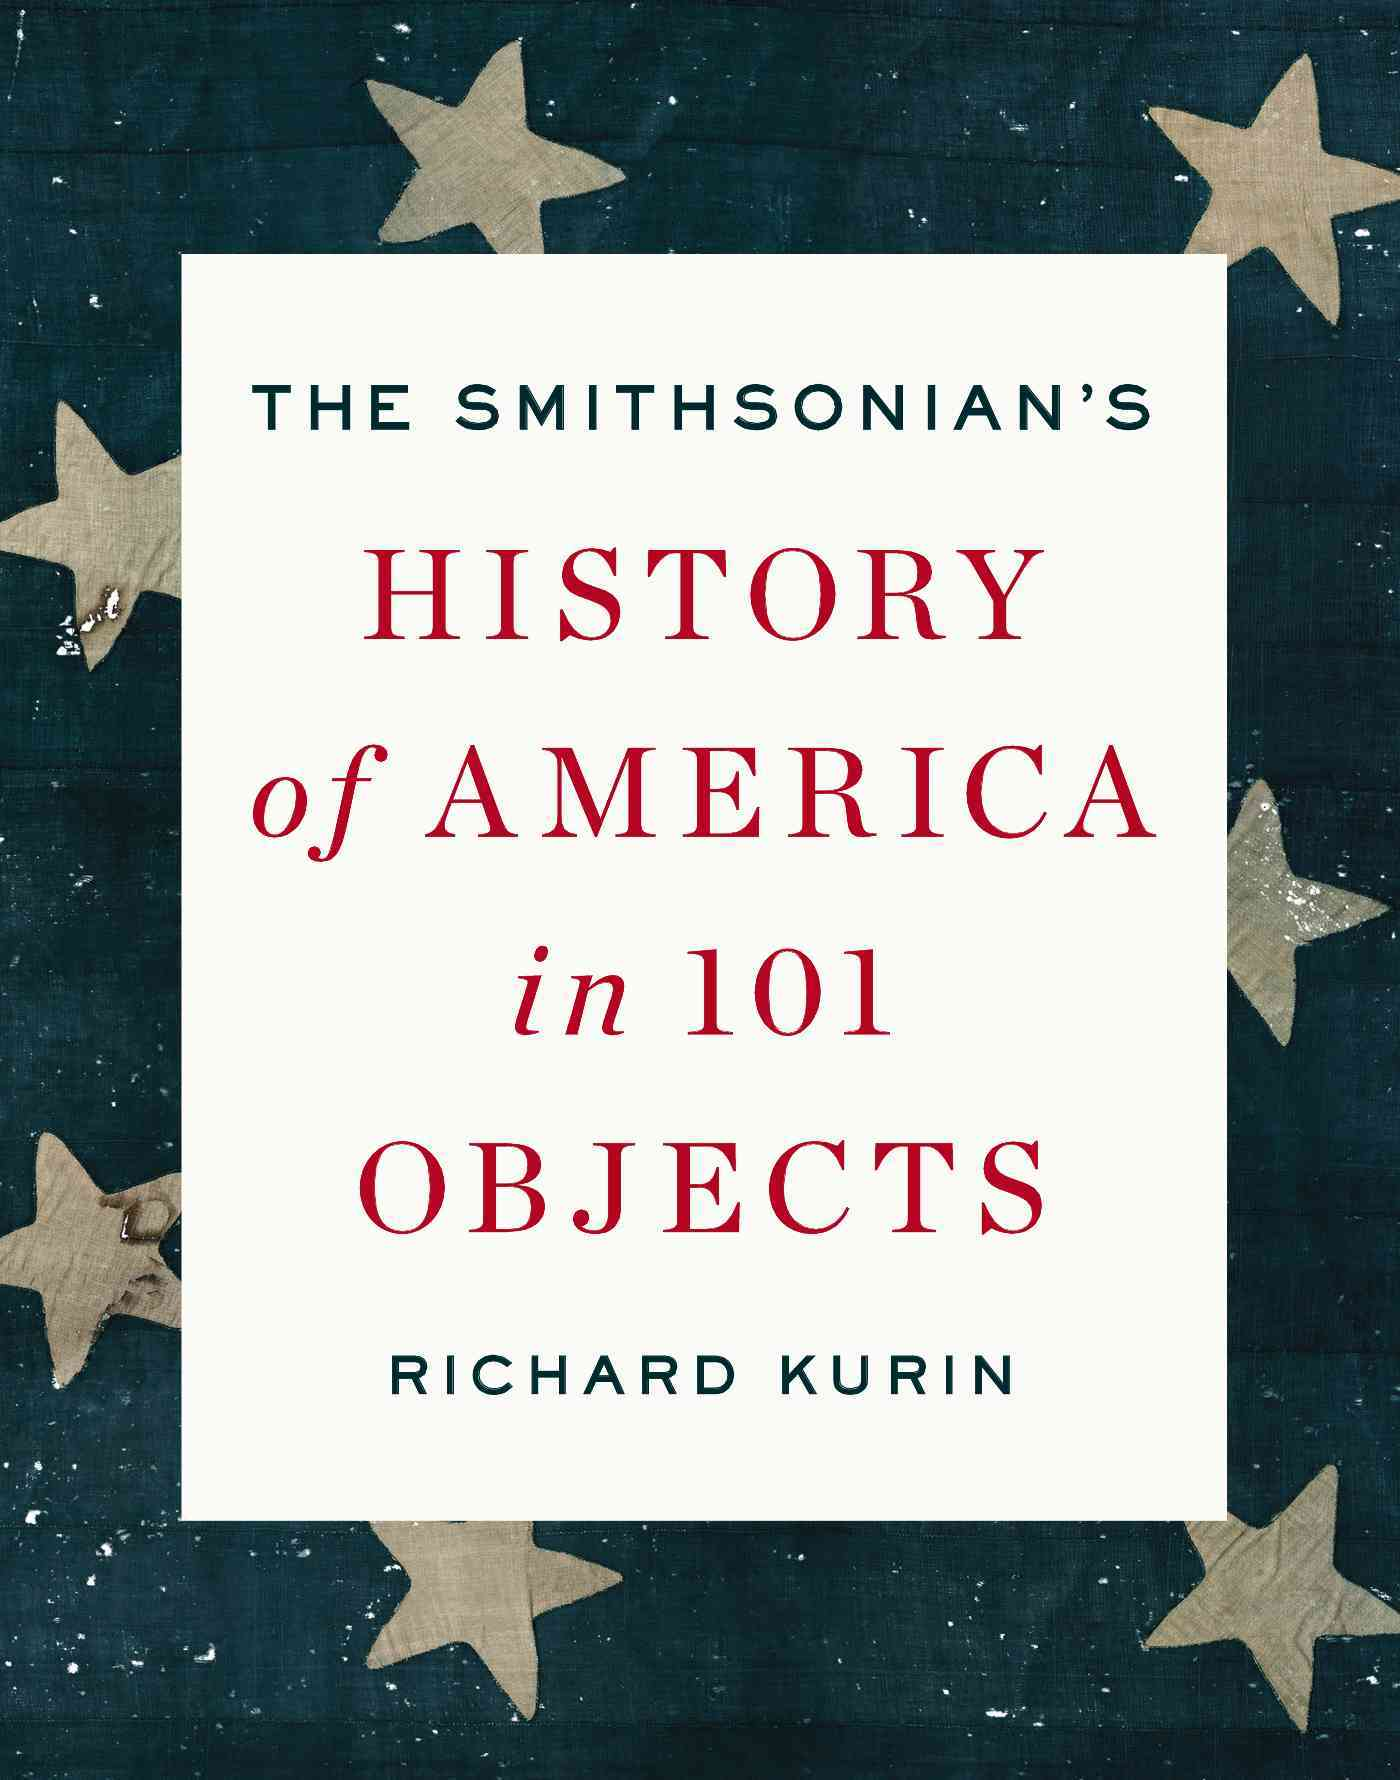 The Smithsonian's History of America in 101 Objects (Hardcover)